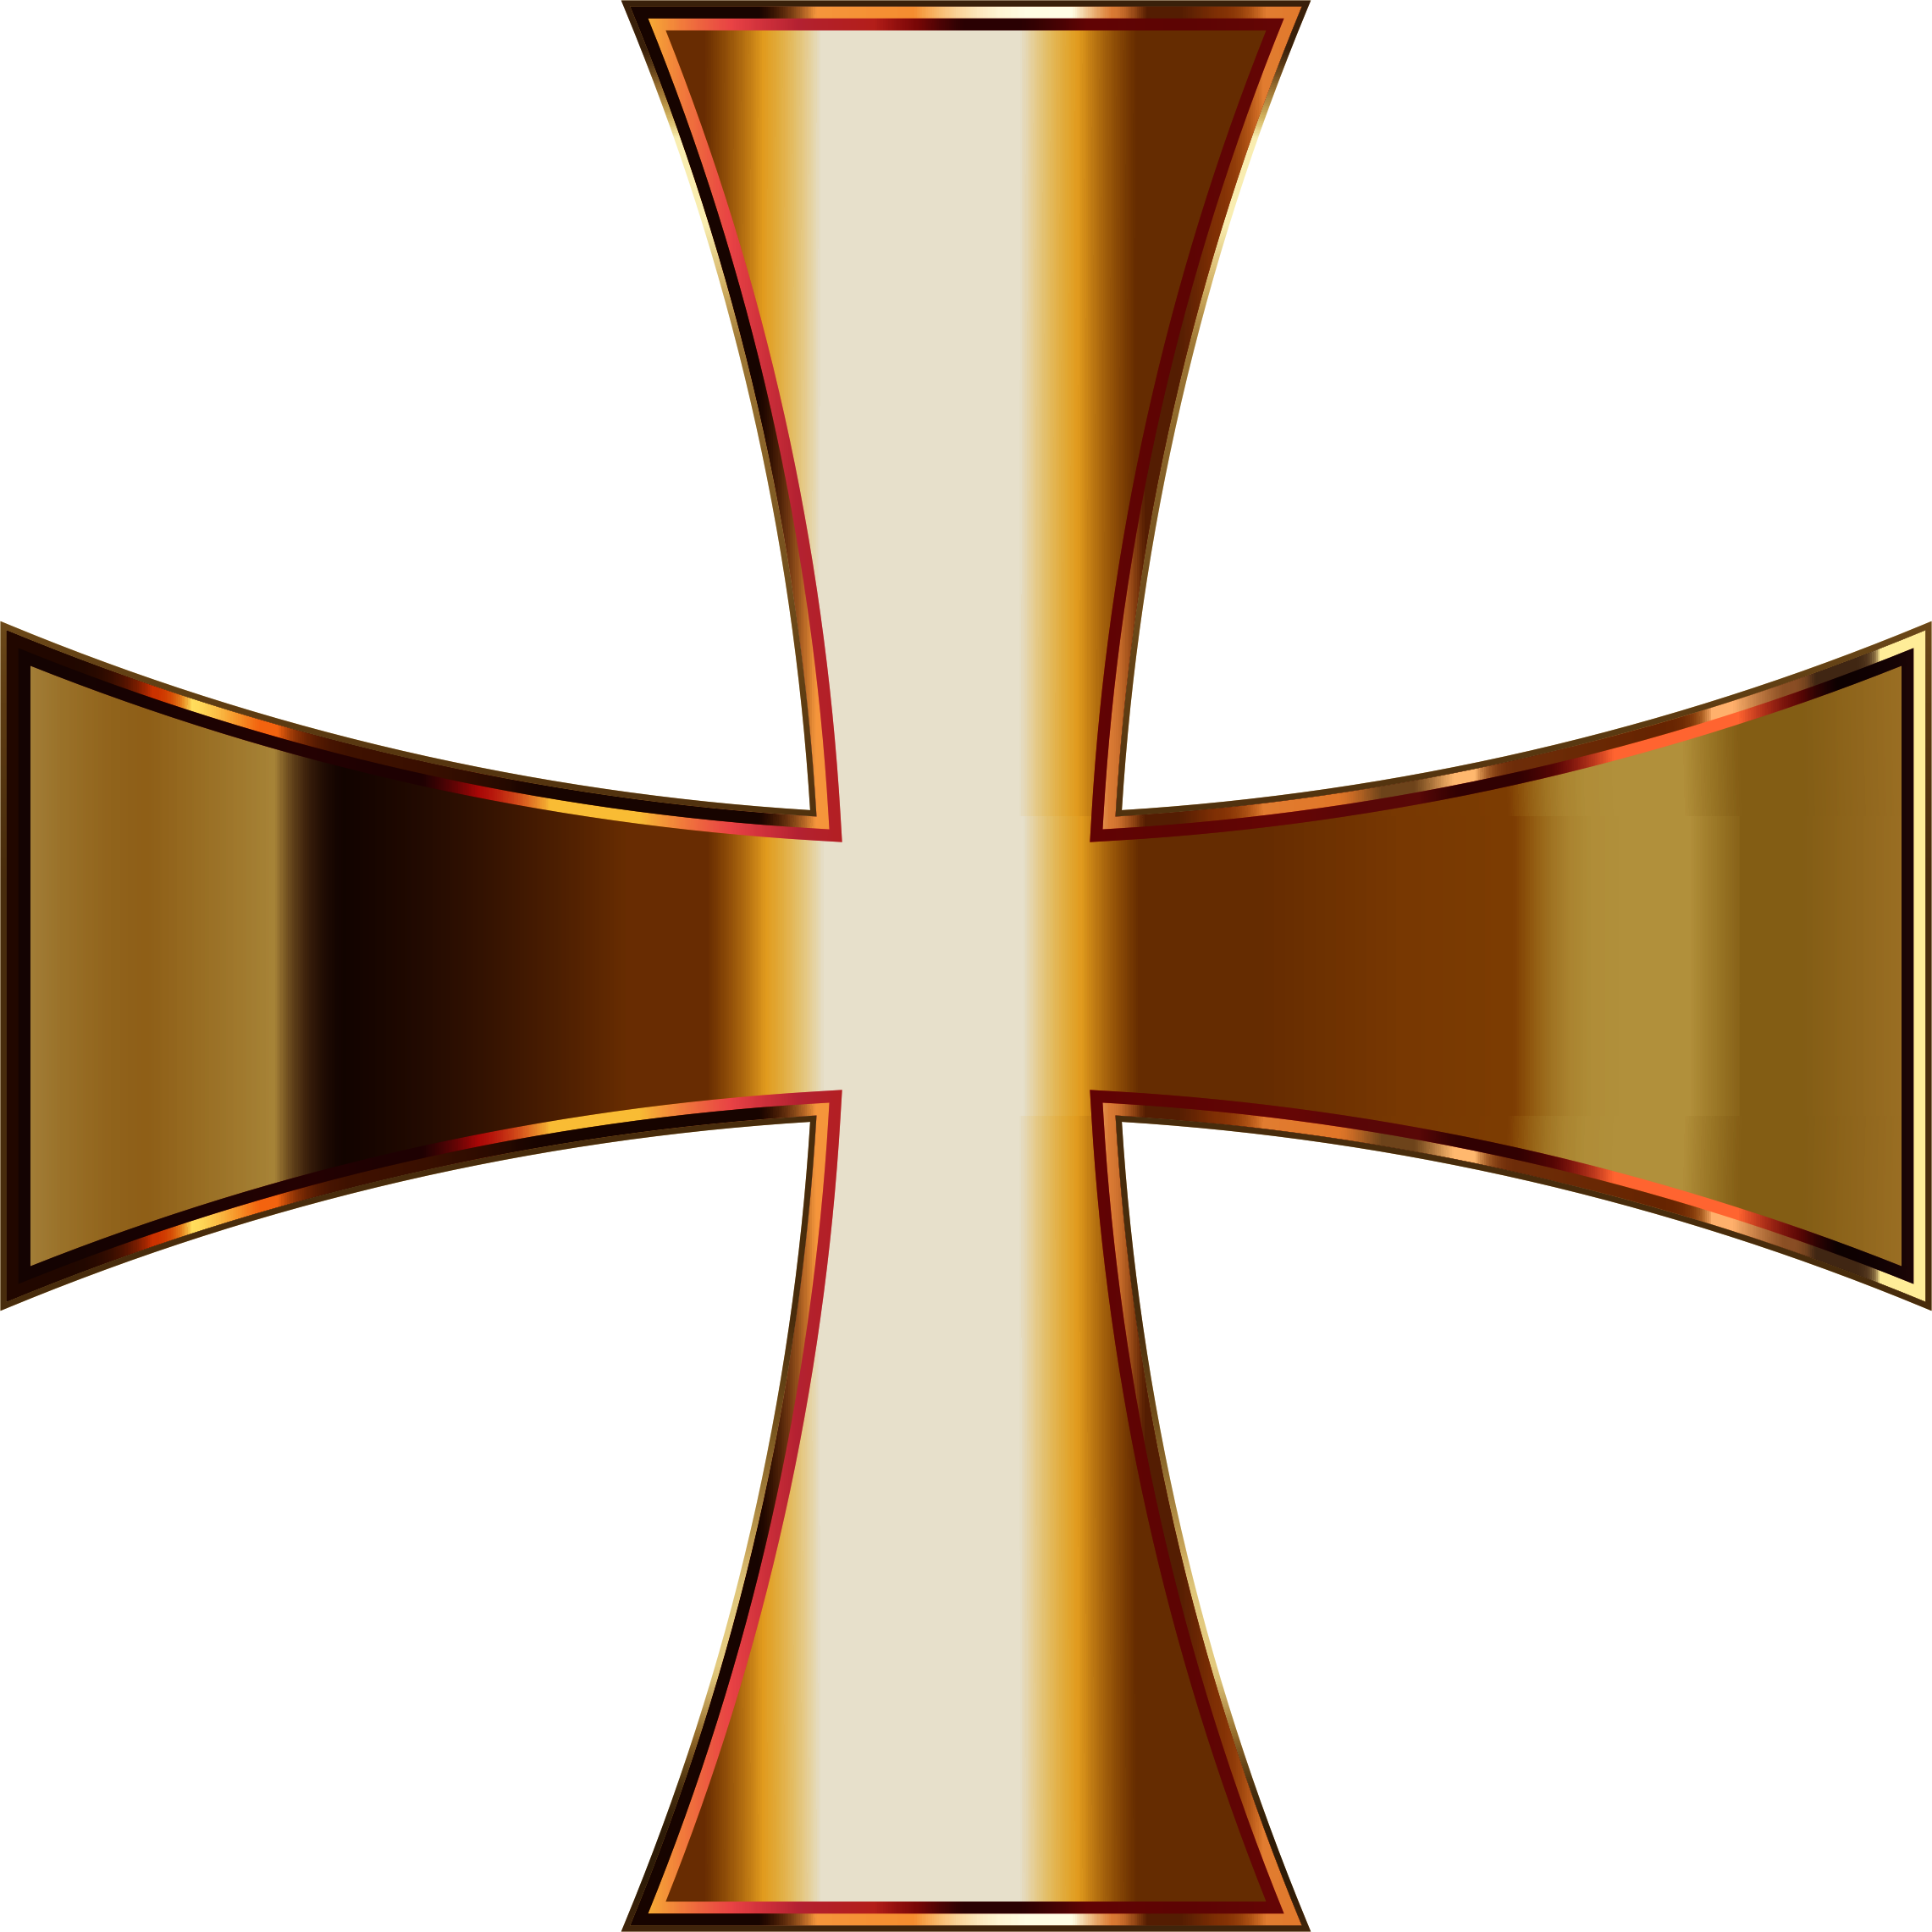 Clipart of a cross with gray background clip art freeuse library Gold Maltese Cross Enhanced Contrast No Background Icons PNG - Free ... clip art freeuse library